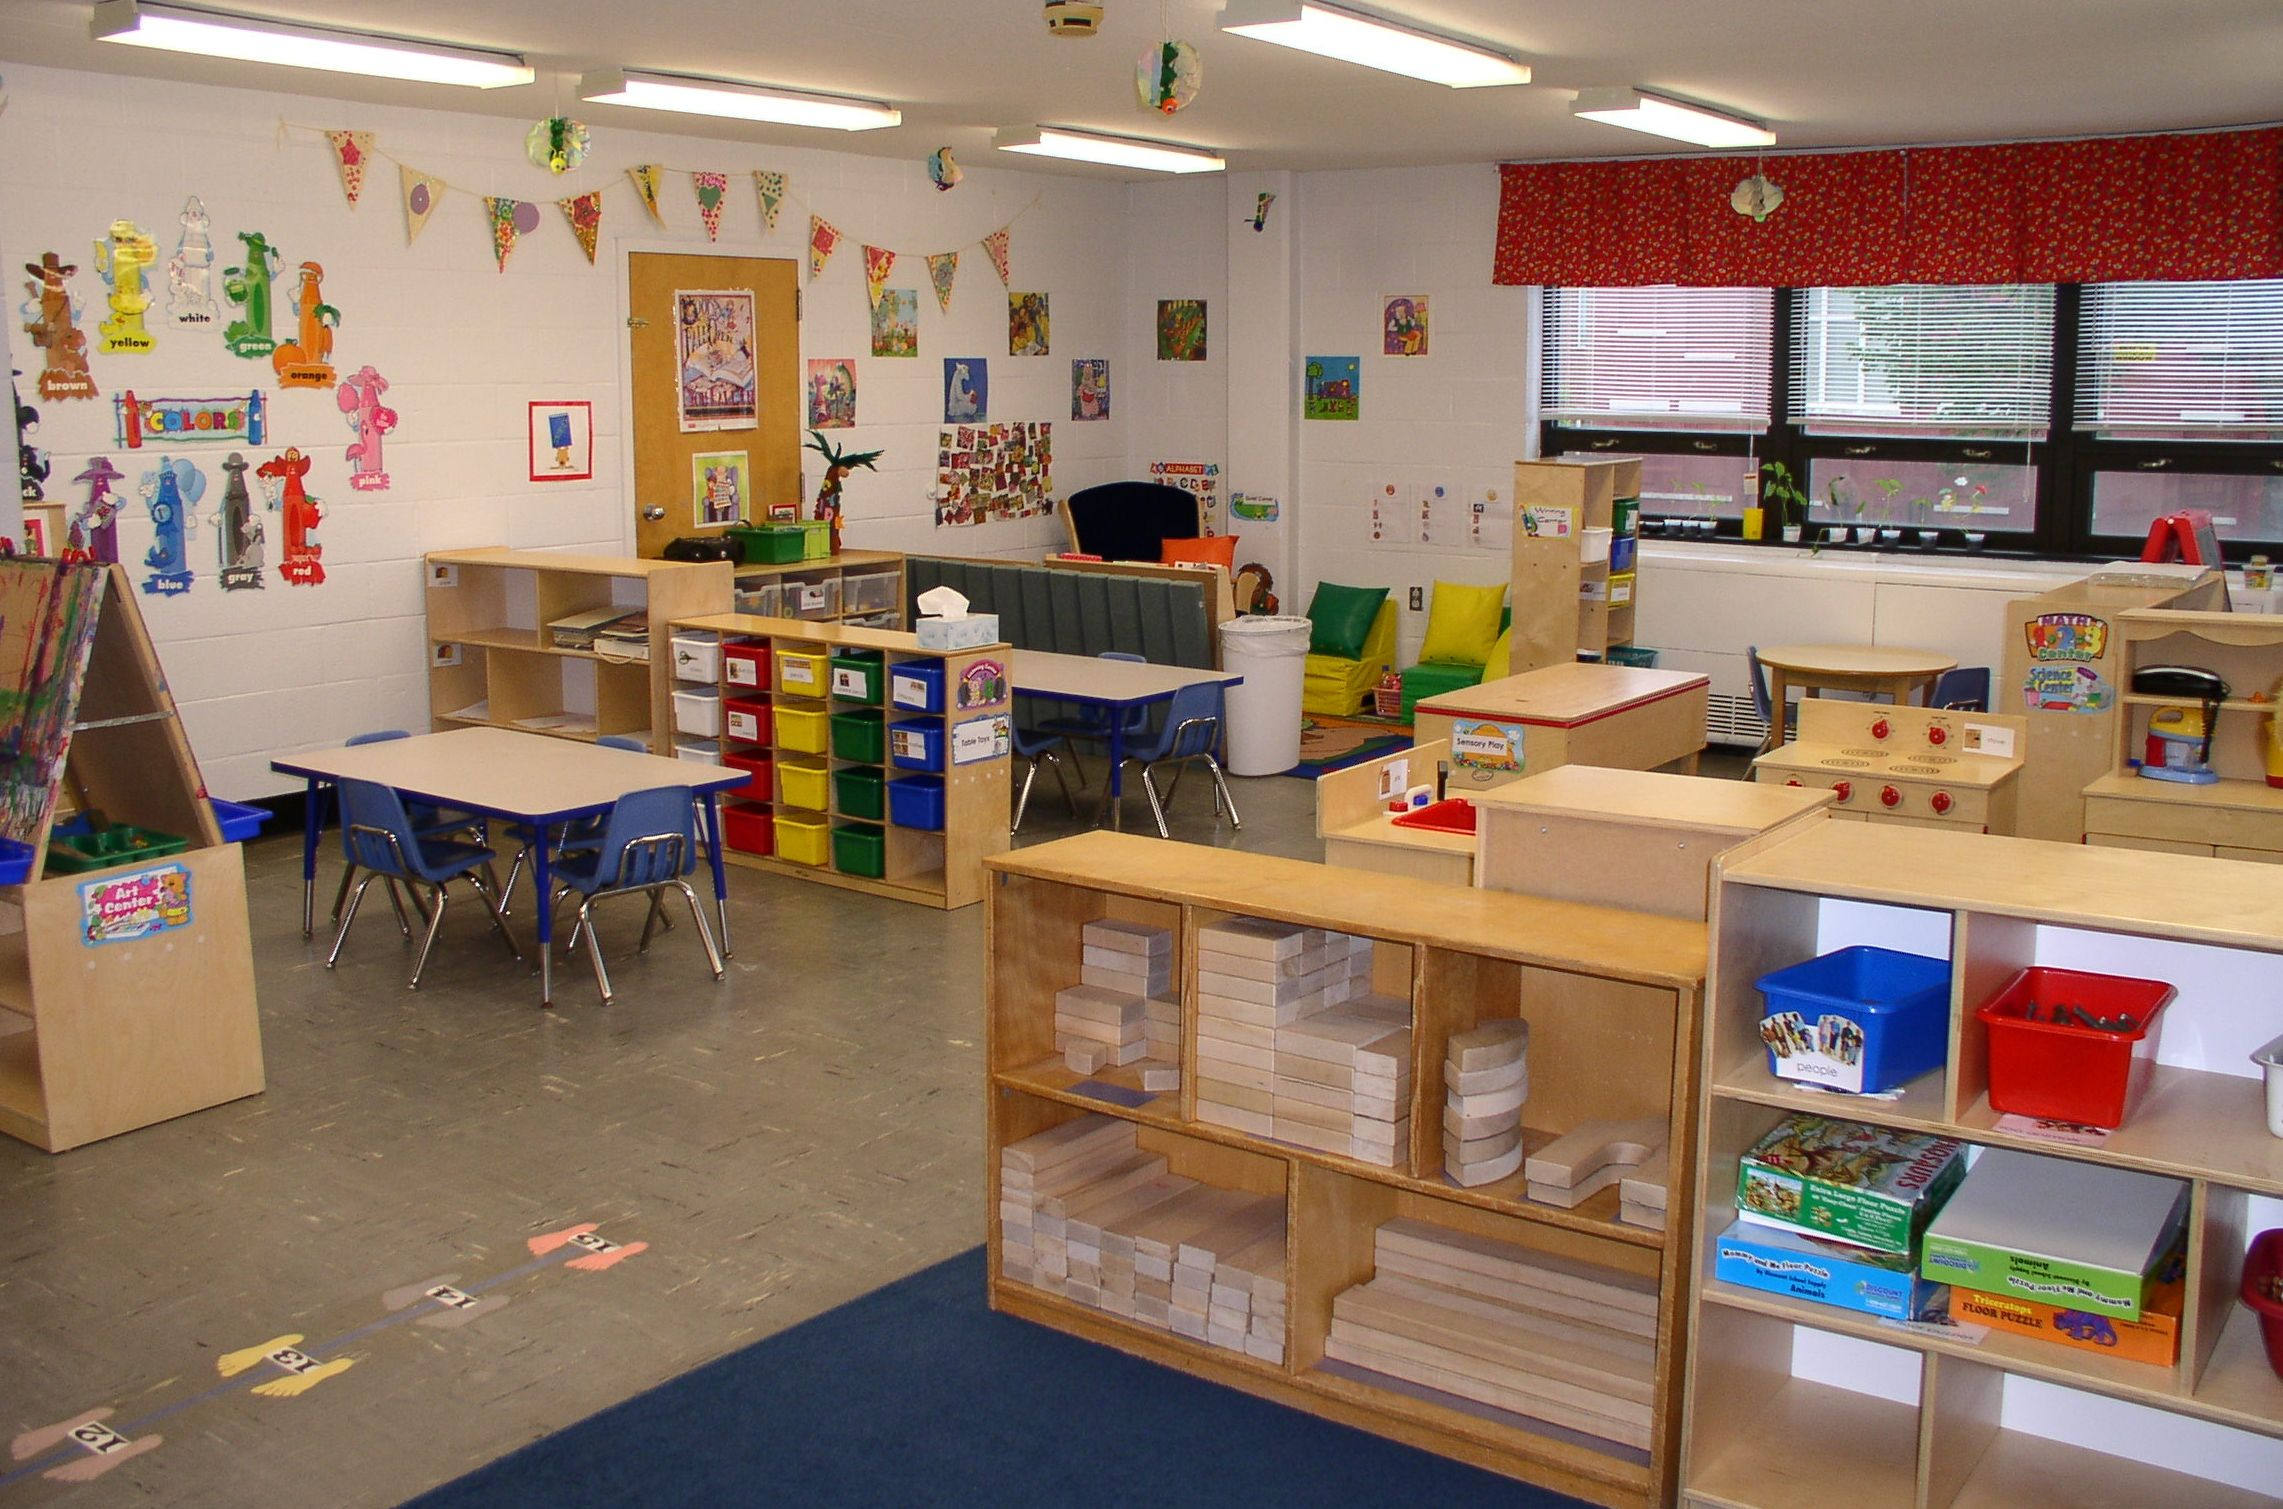 Design Ideas For Classroom : Ywca elmira nice layout classroom designs for